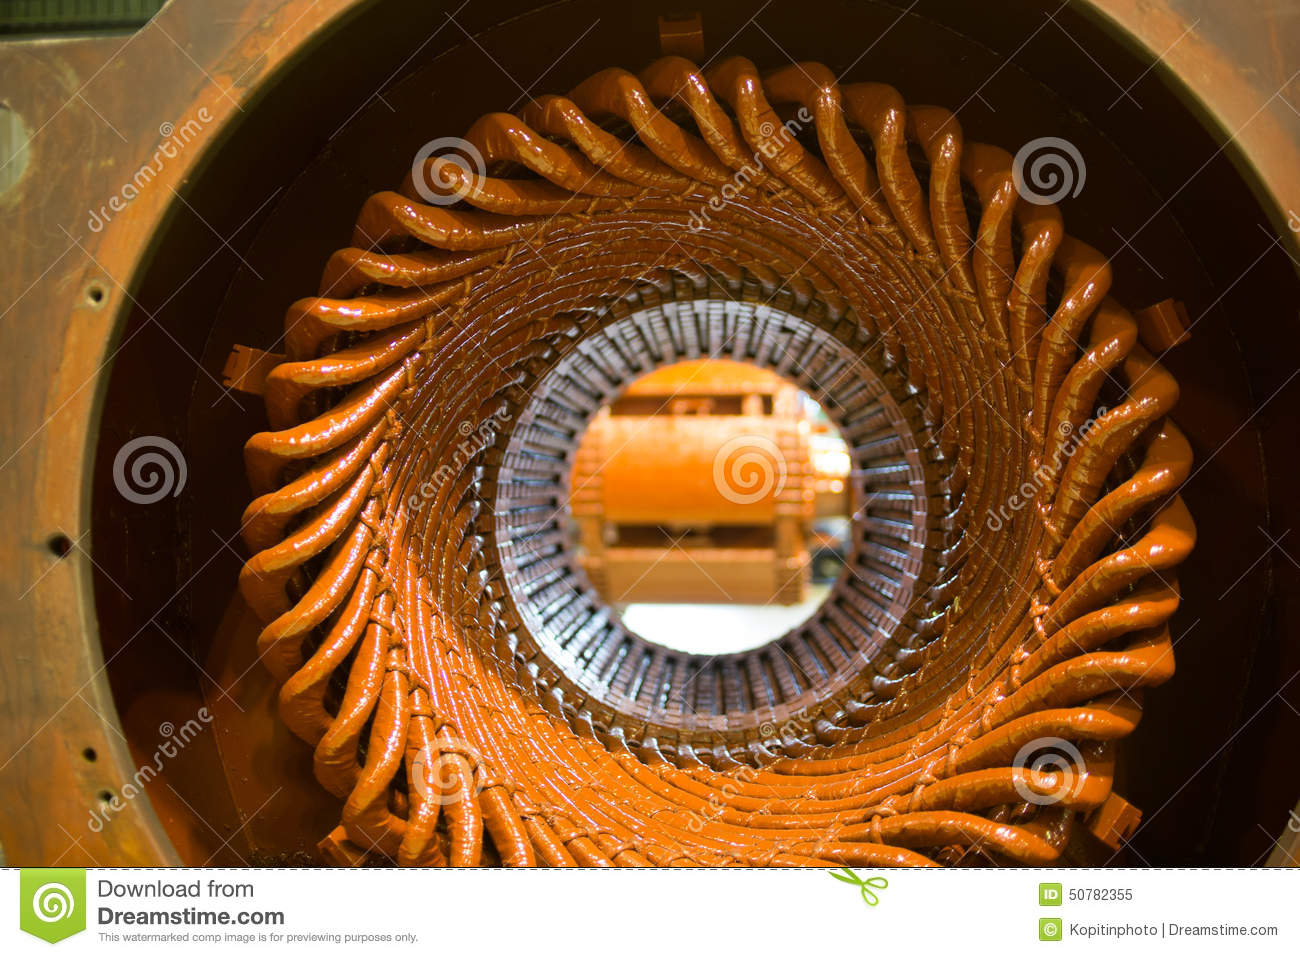 Stator Of A Big Electric Motor Stock Photo Image 50782355